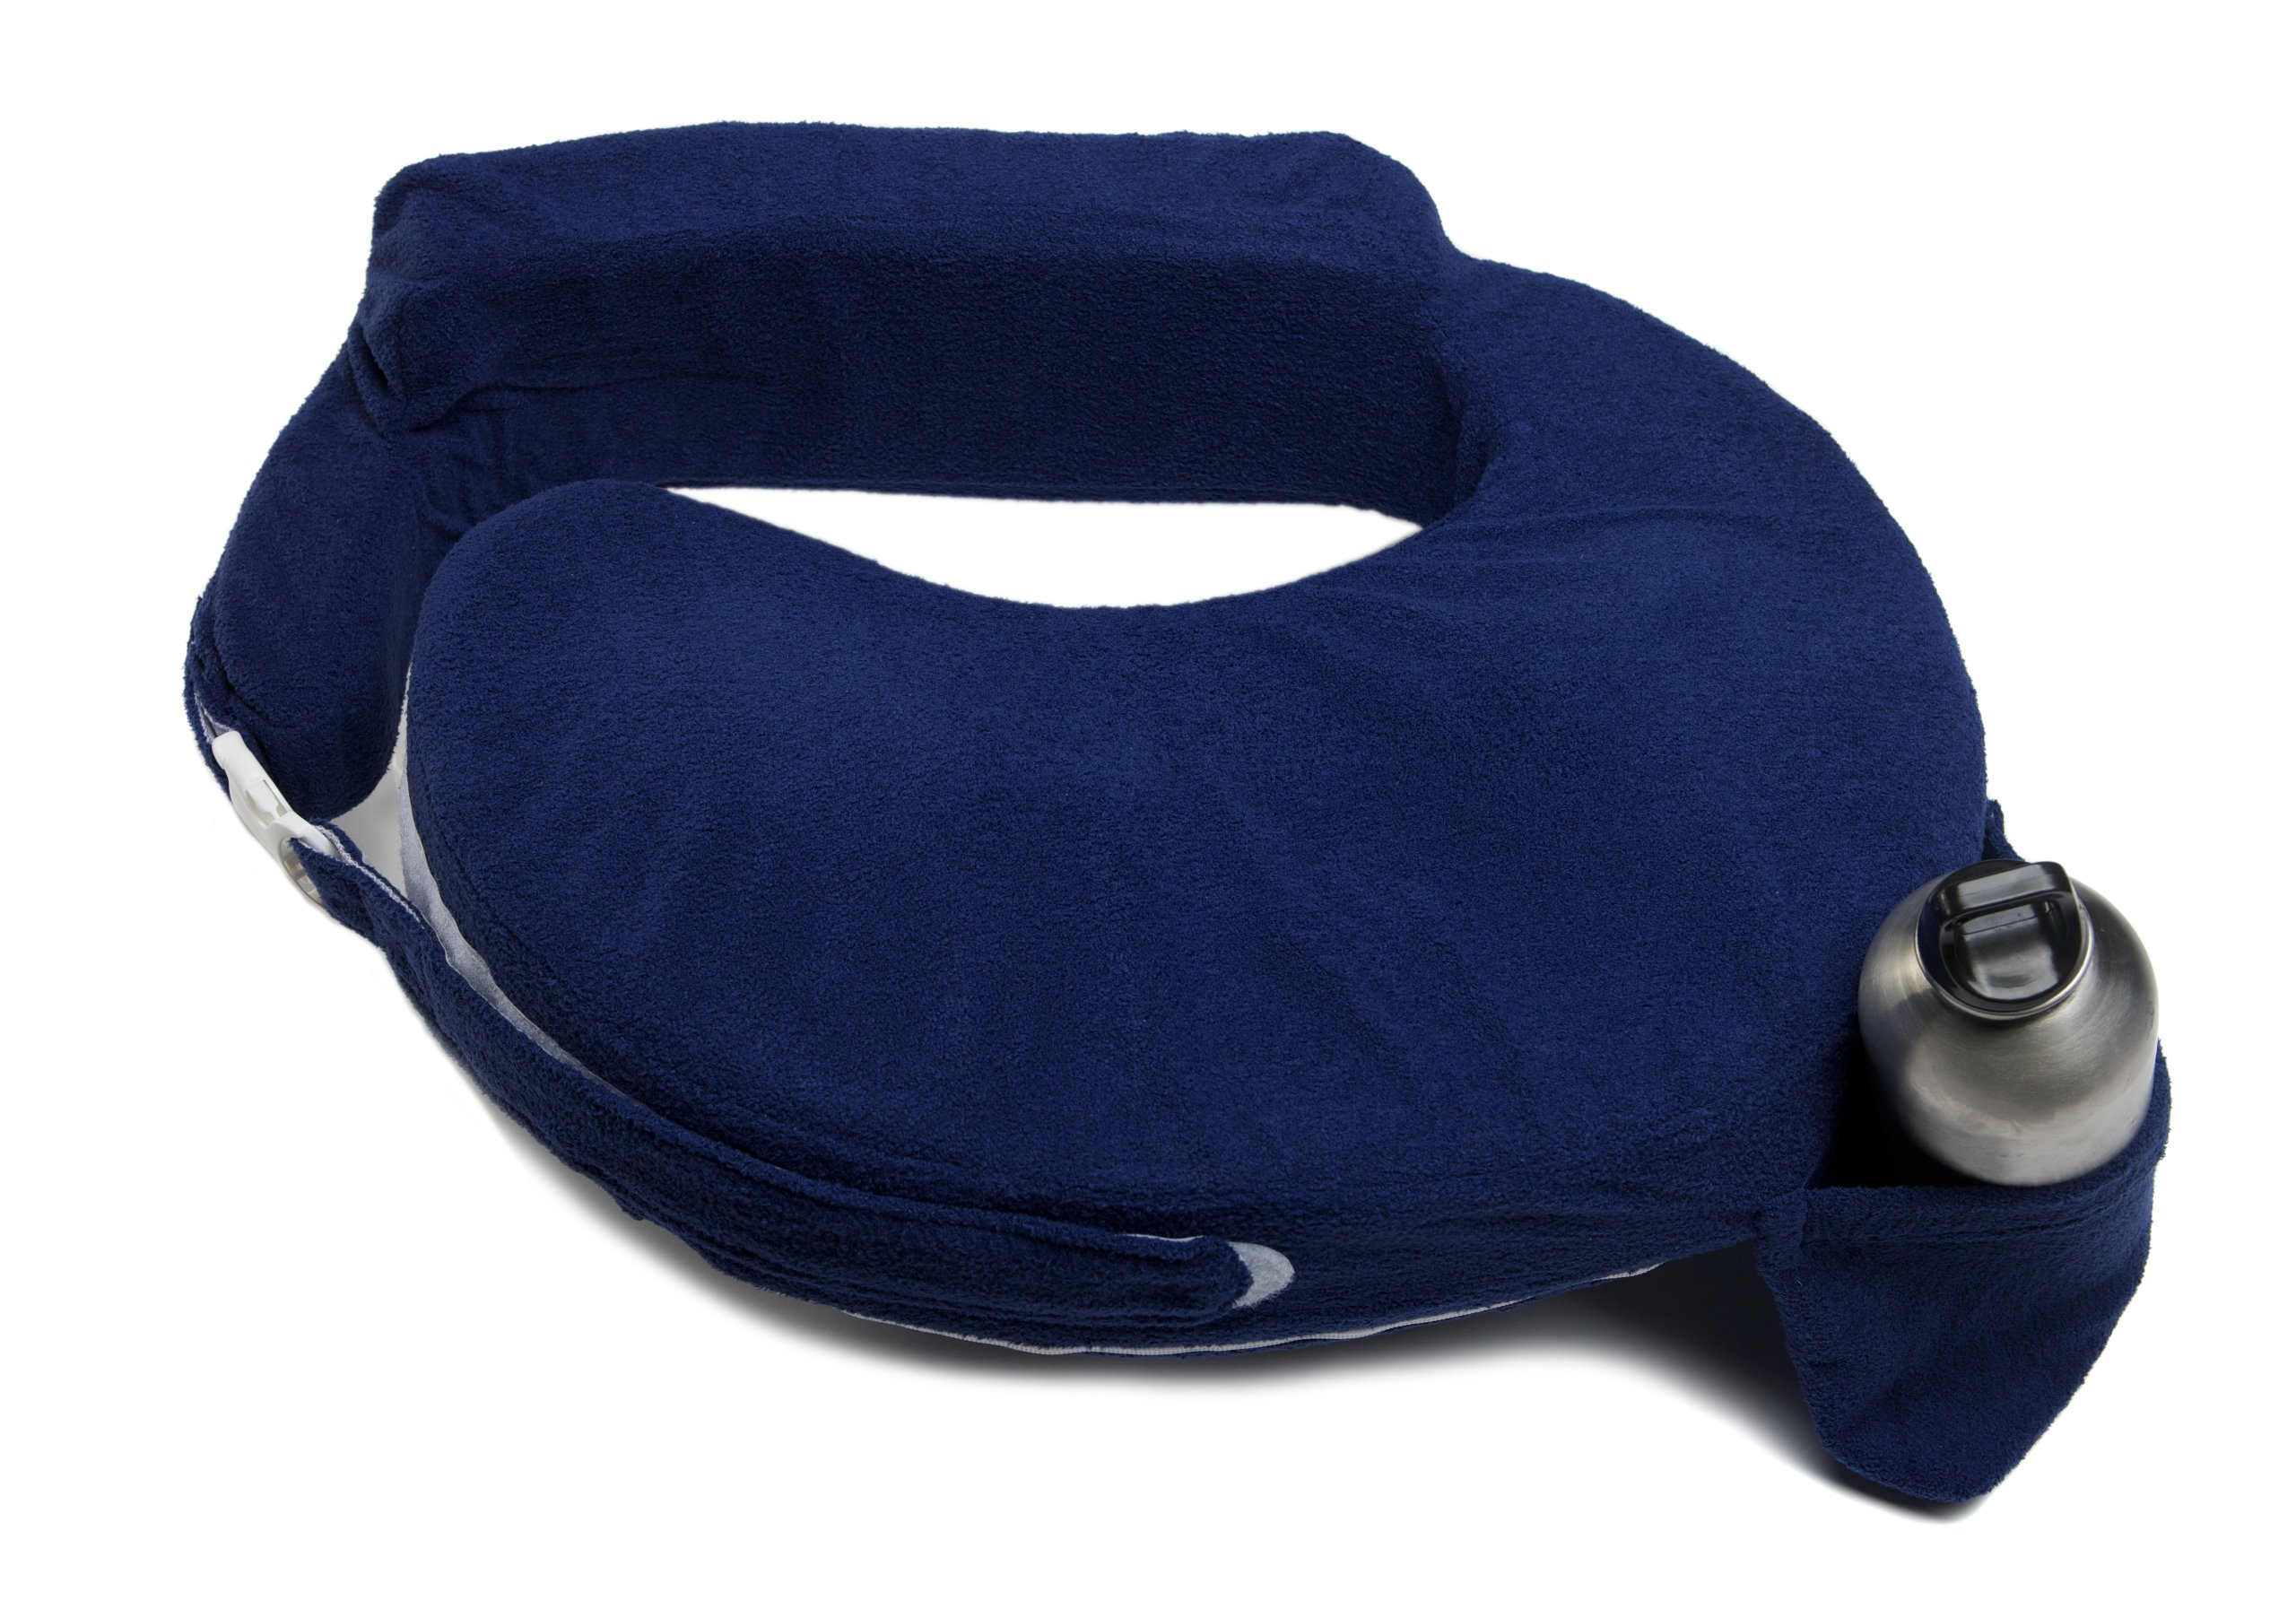 My Brest Friend Nursing Pillow Deluxe Slipcover - Machine Washable Breastfeeding Cushion Cover - Pillow not Included, Navy by My Brest Friend